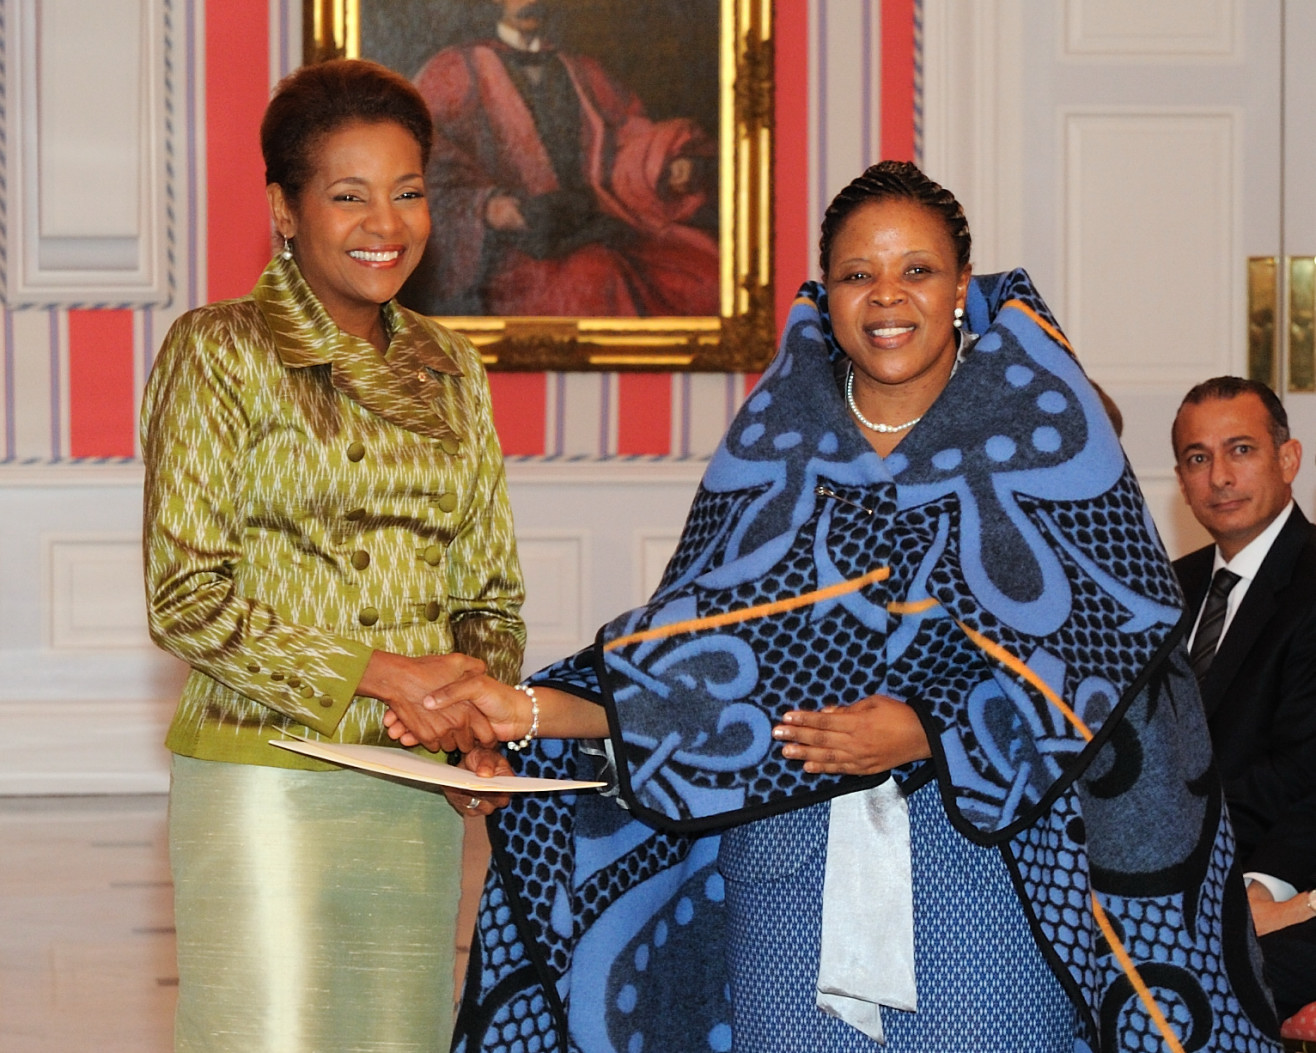 Her Excellency the Right Honourable Michaëlle Jean, Governor General of Canada, received the credentials of Her Excellency 'Mathabo Tsepa, High Commissioner Designate of the Kingdom of Lesotho.